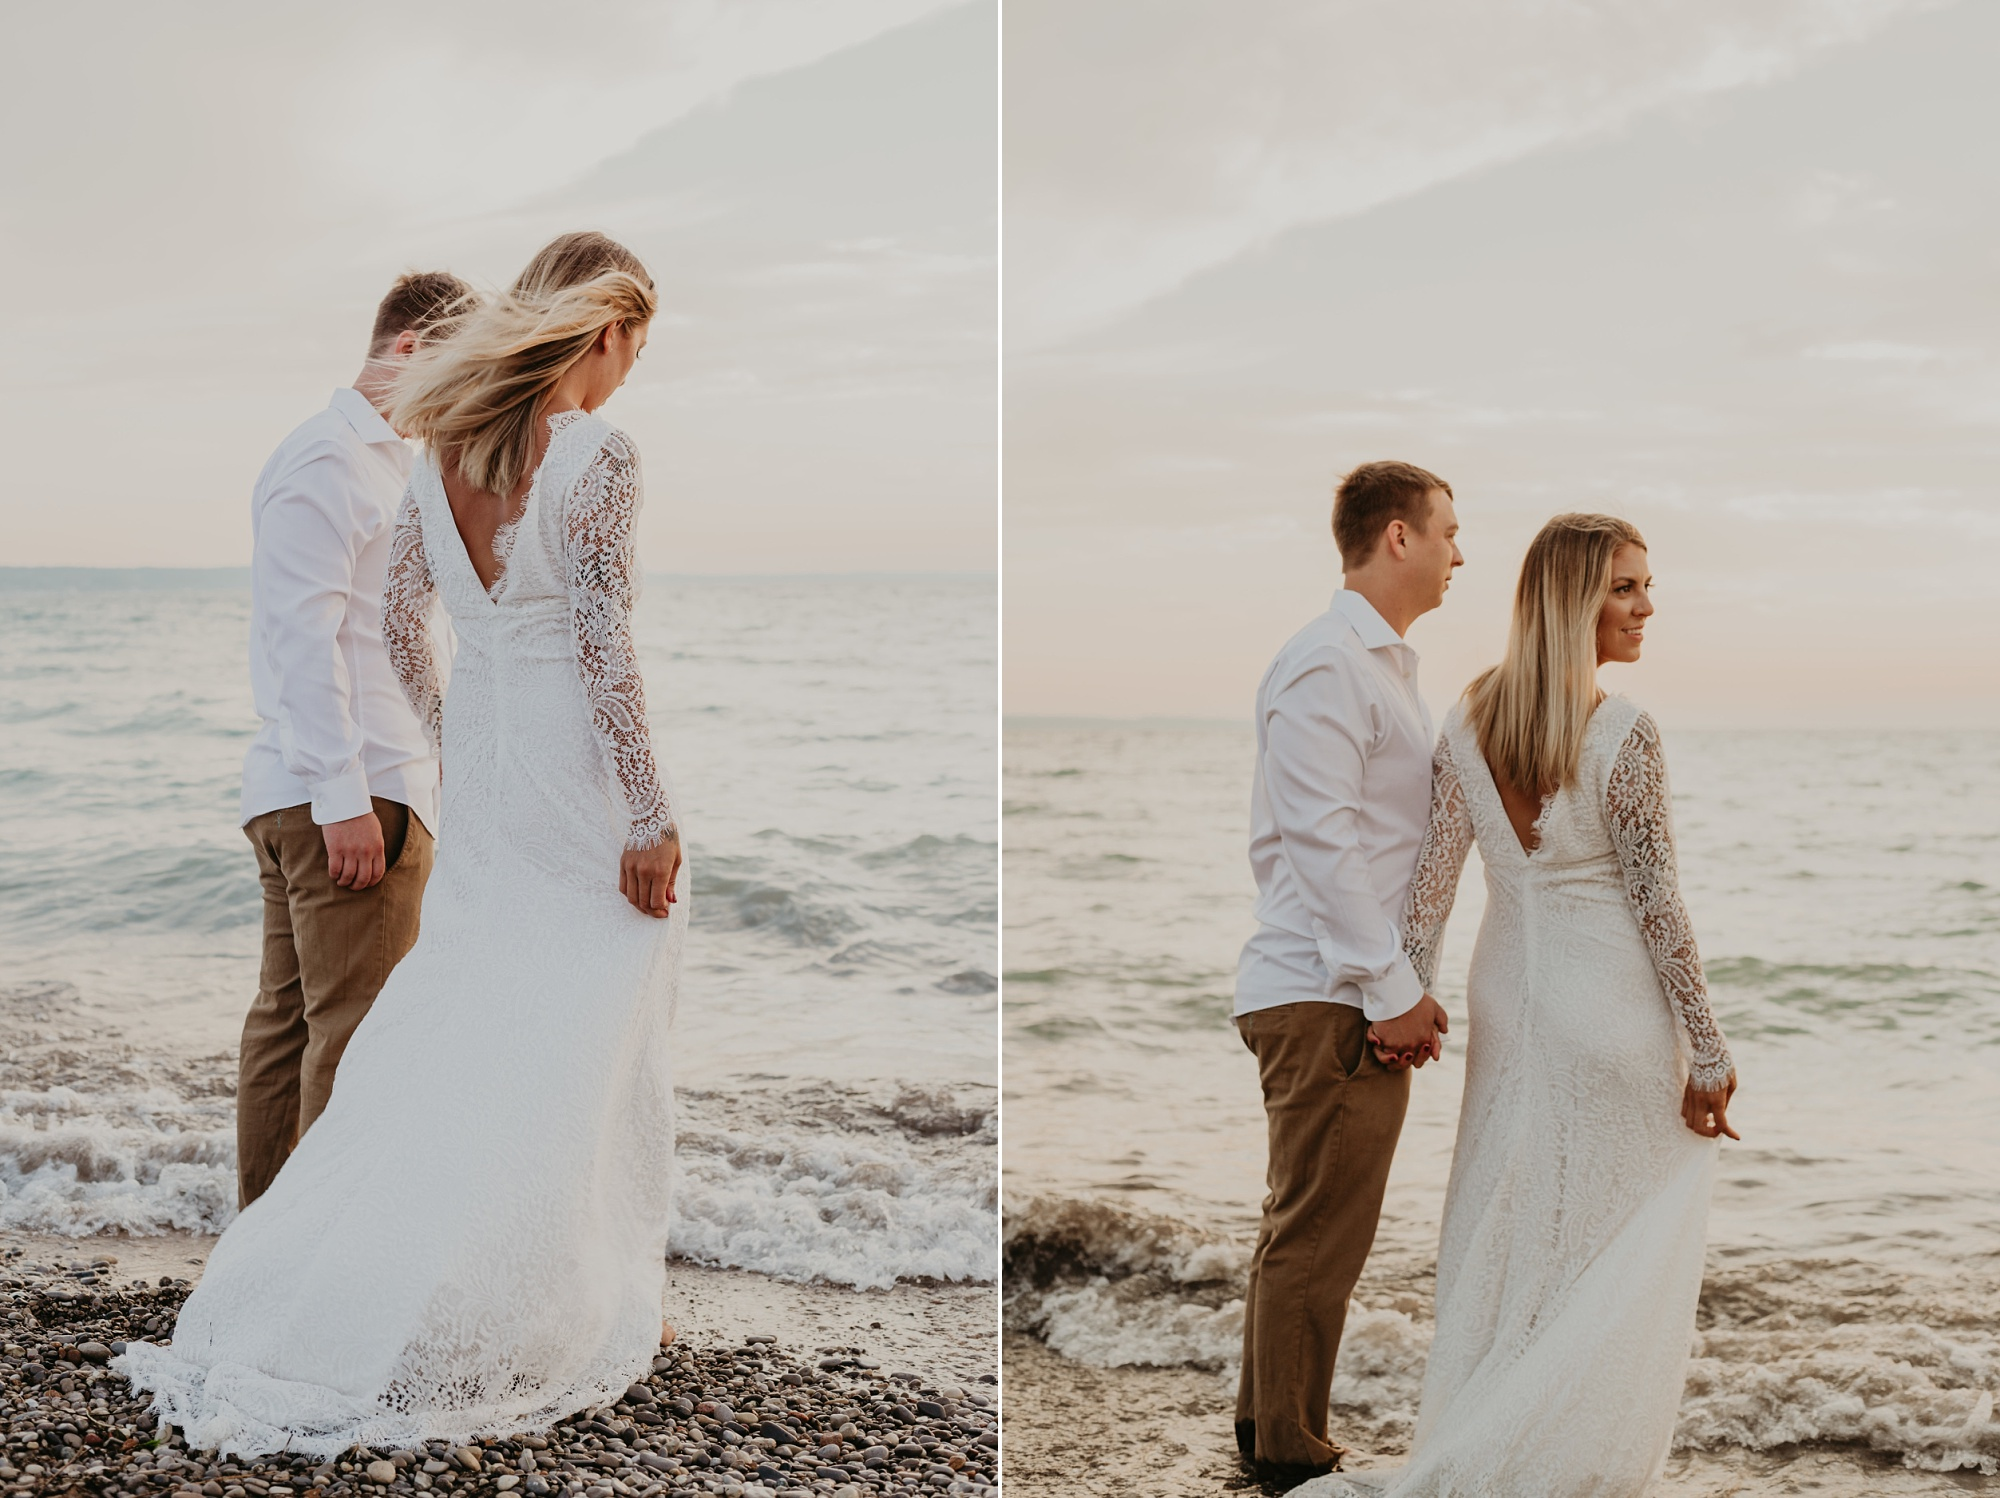 Lake Michigan beach elopement. Bride and groom by the lake.